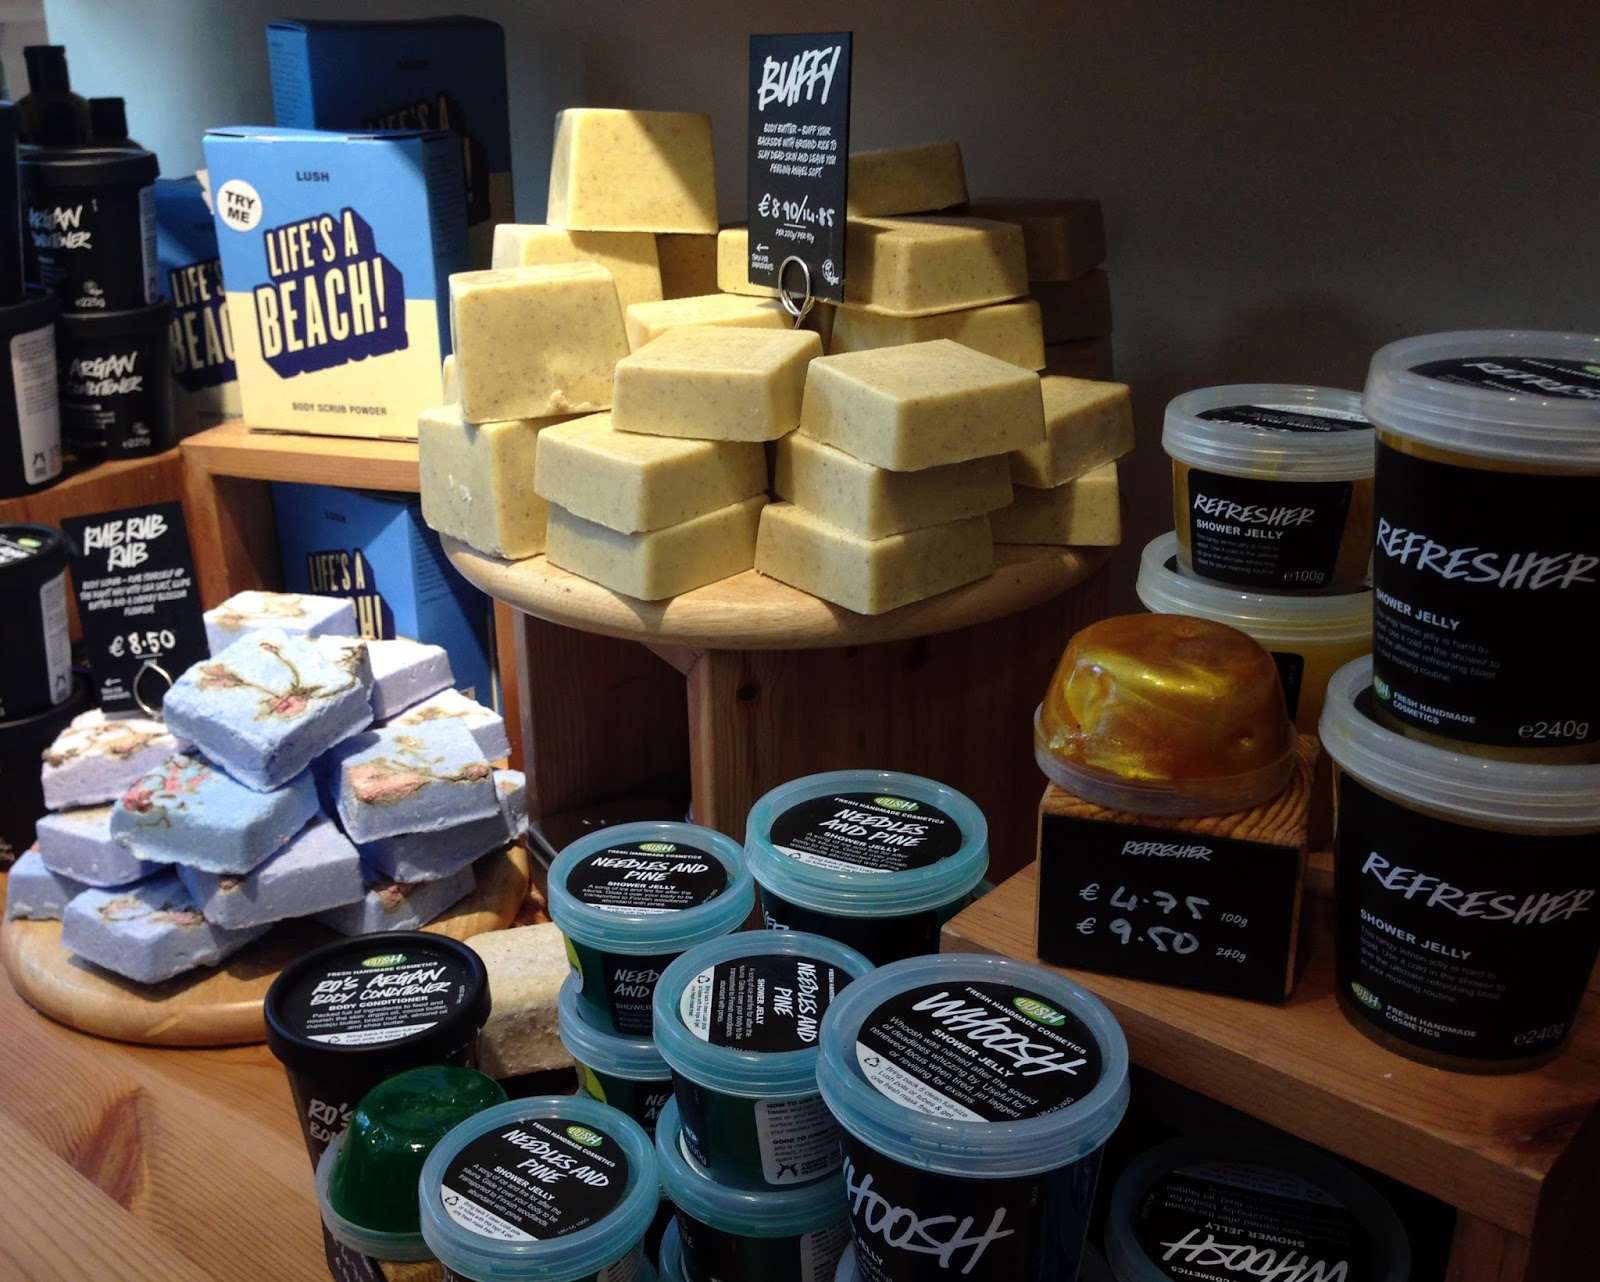 Lush New Products 2015